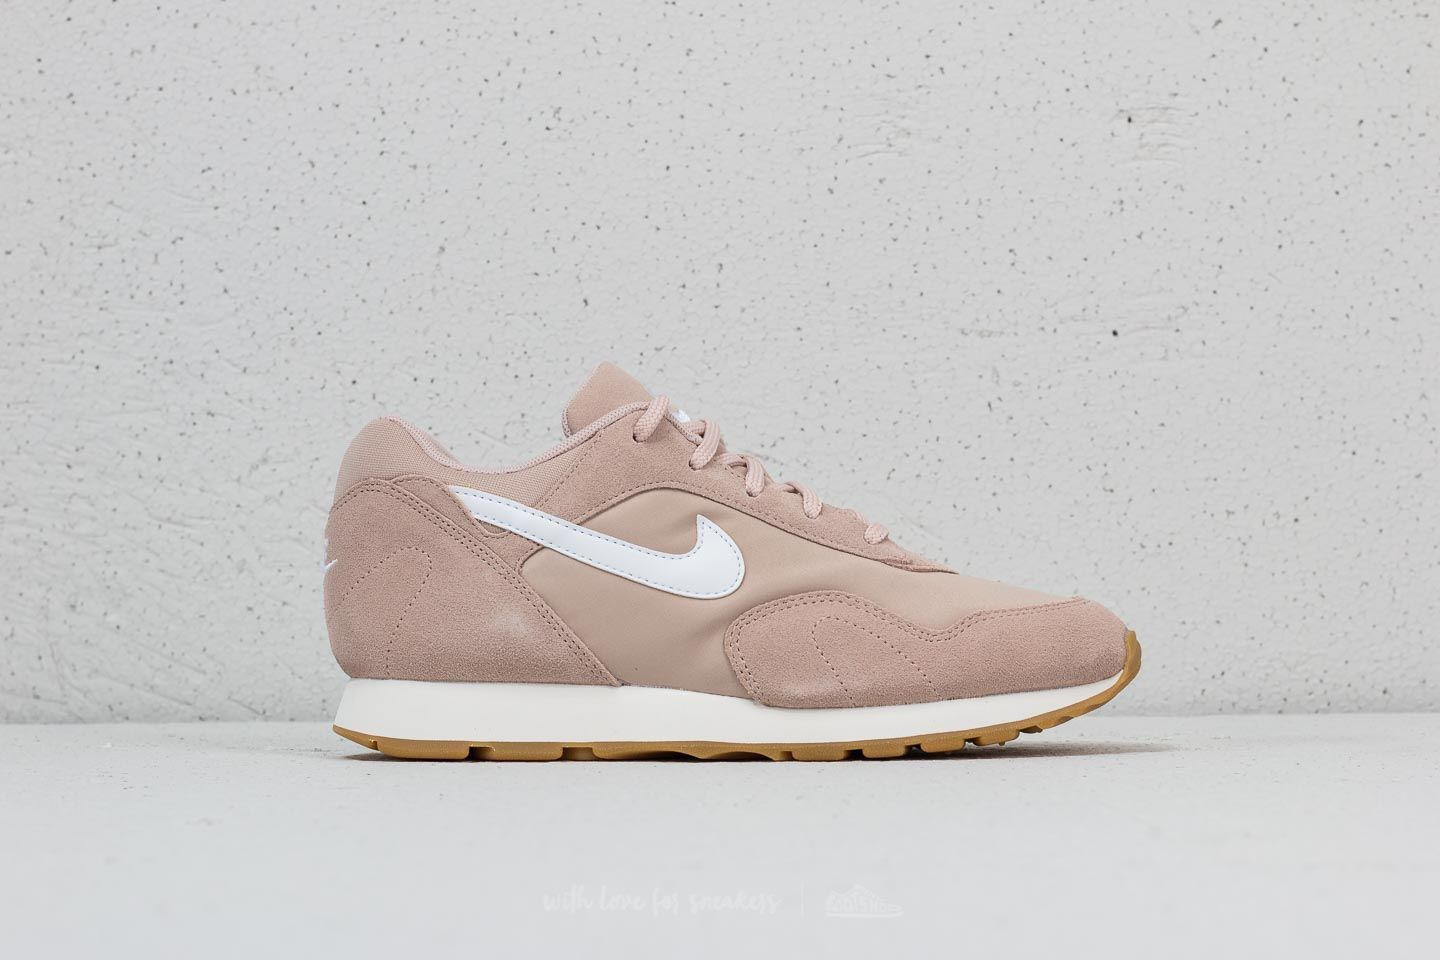 online retailer addfc b75e2 Nike W Outburst Particle Beige  White-Sand-Sail at a great price 88